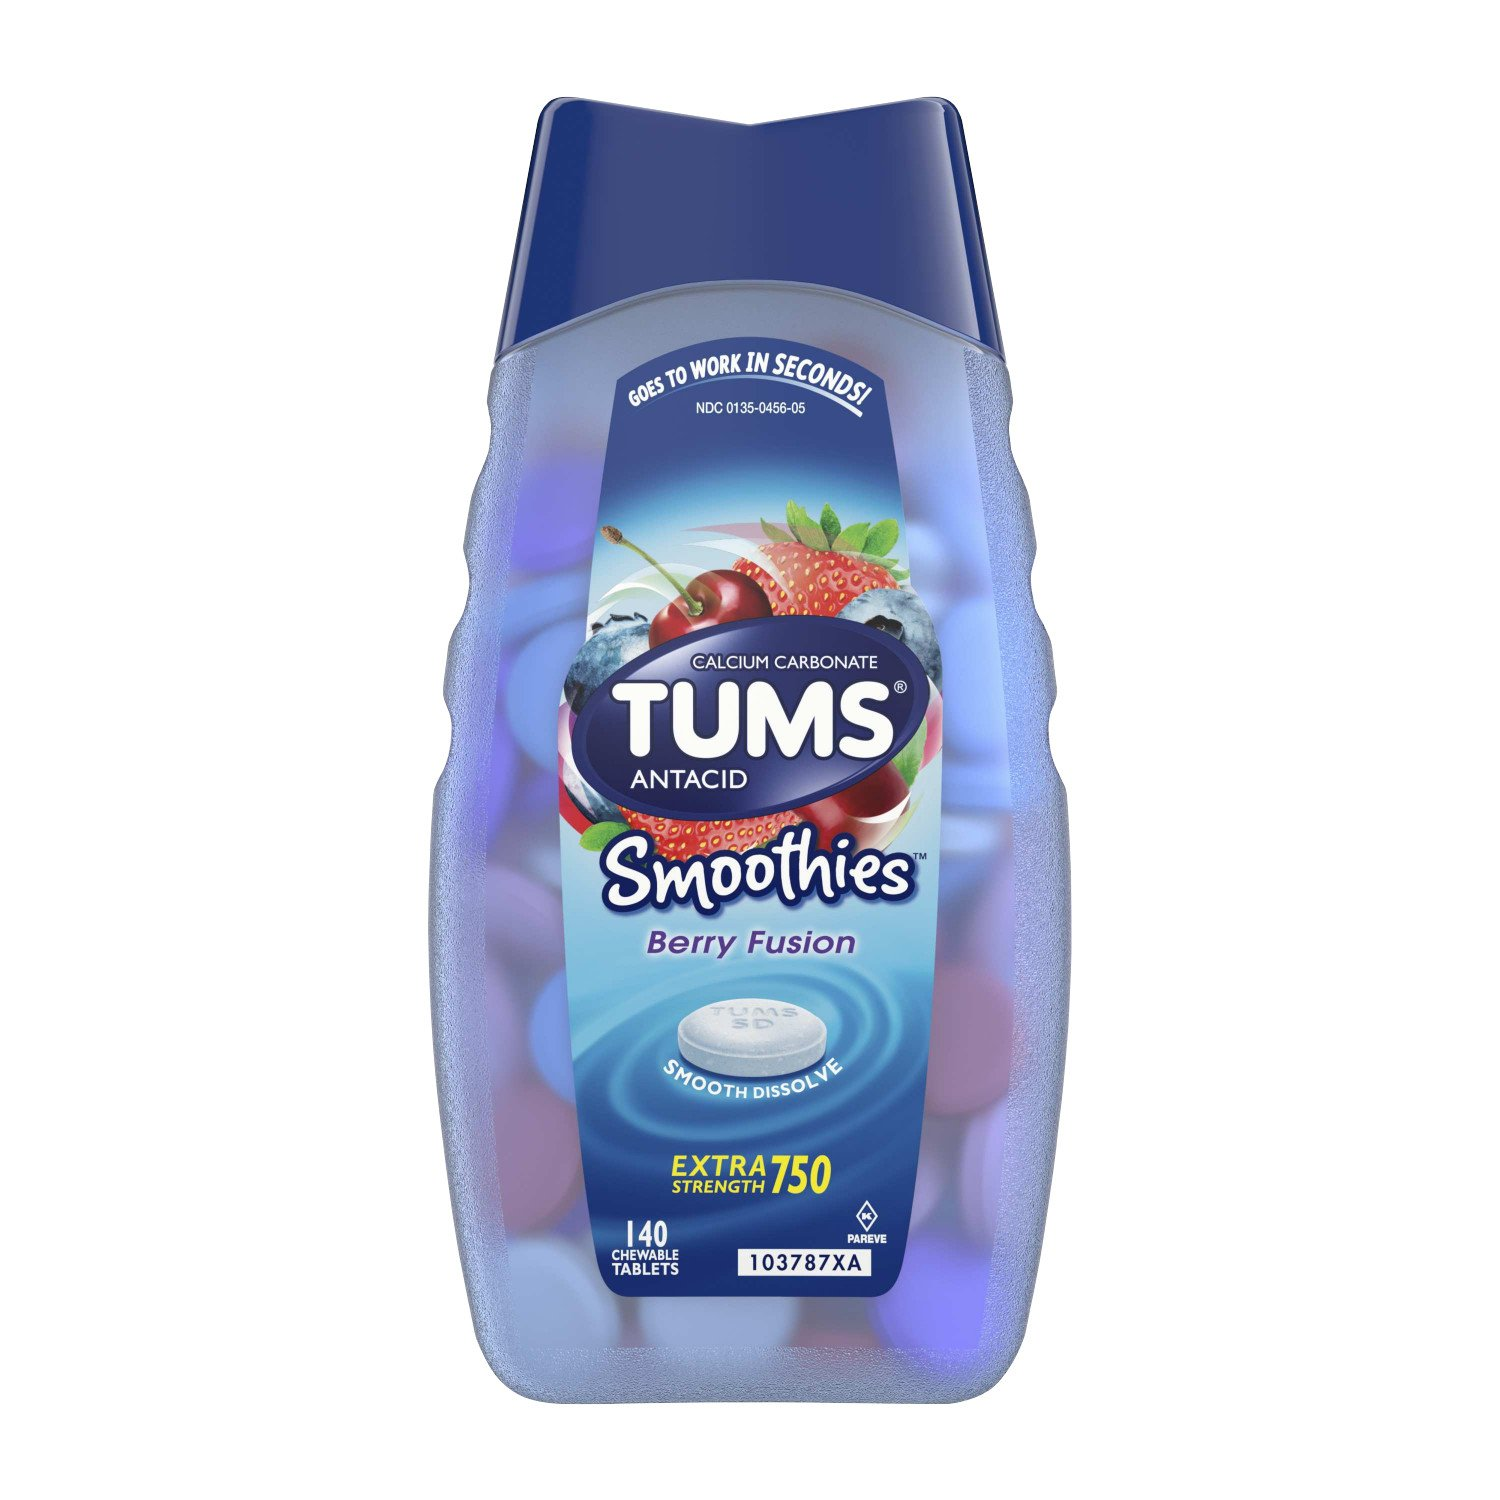 Tums Smoothies Reviews